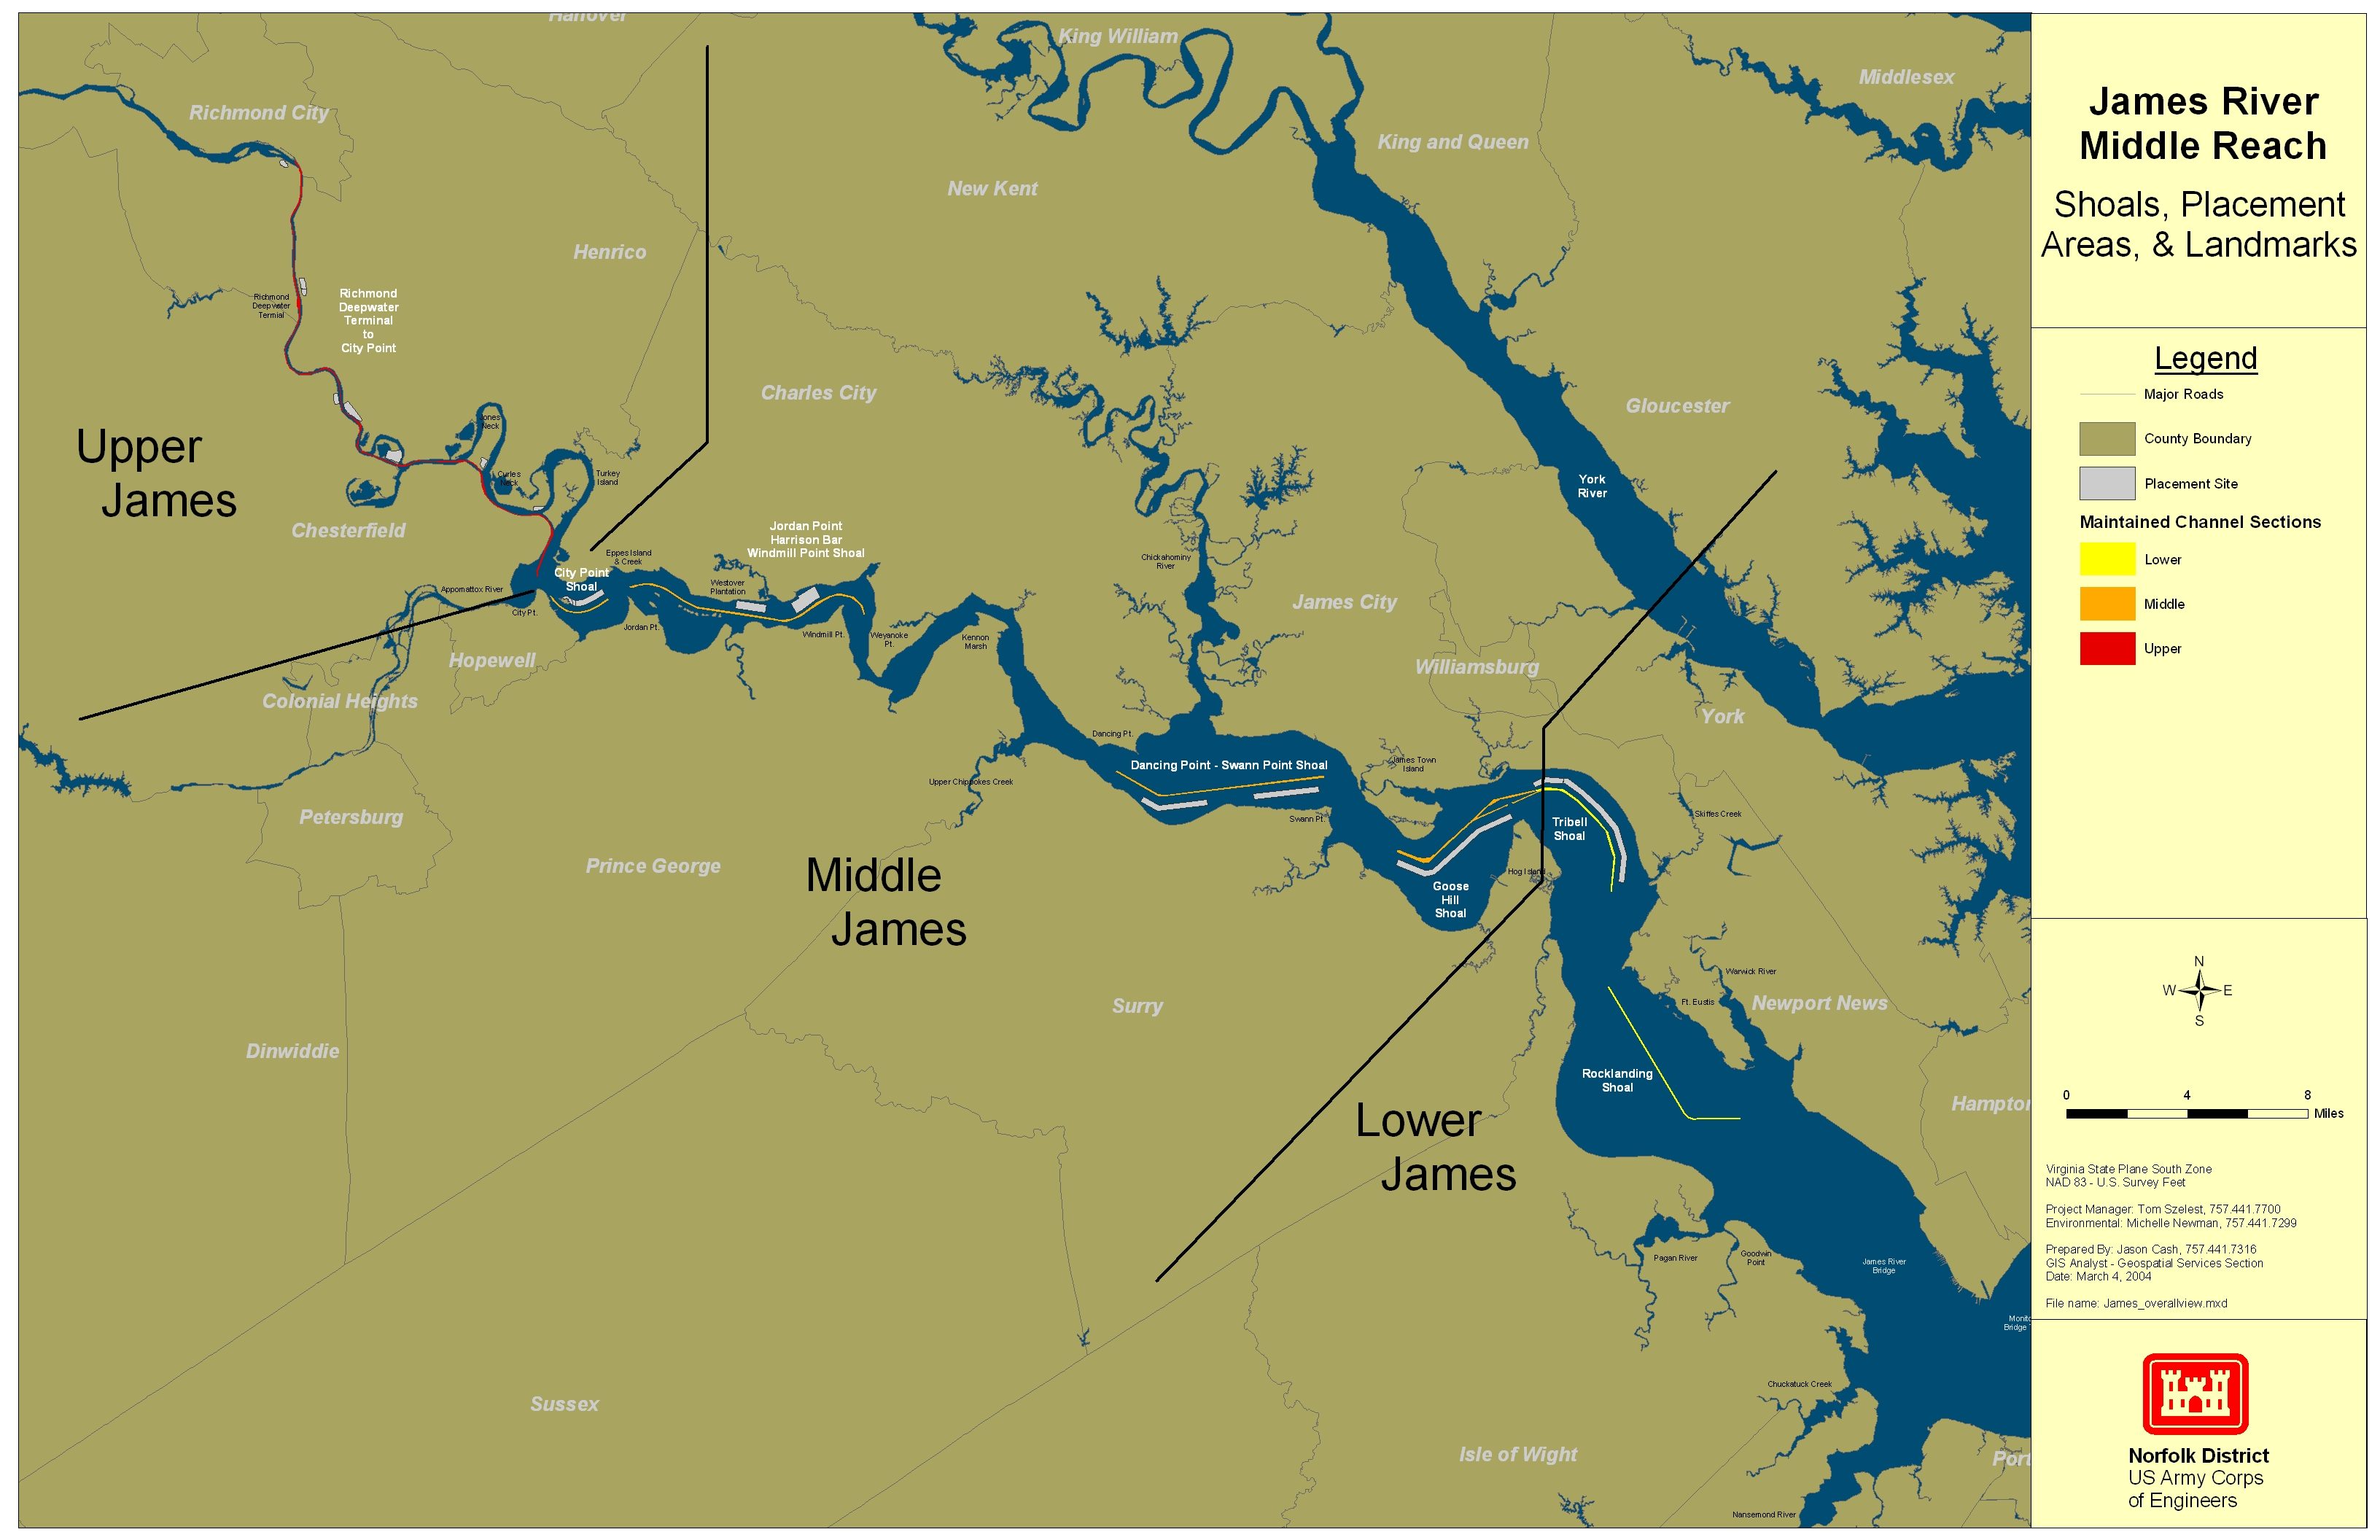 James River Map James River Navigation Channel Map